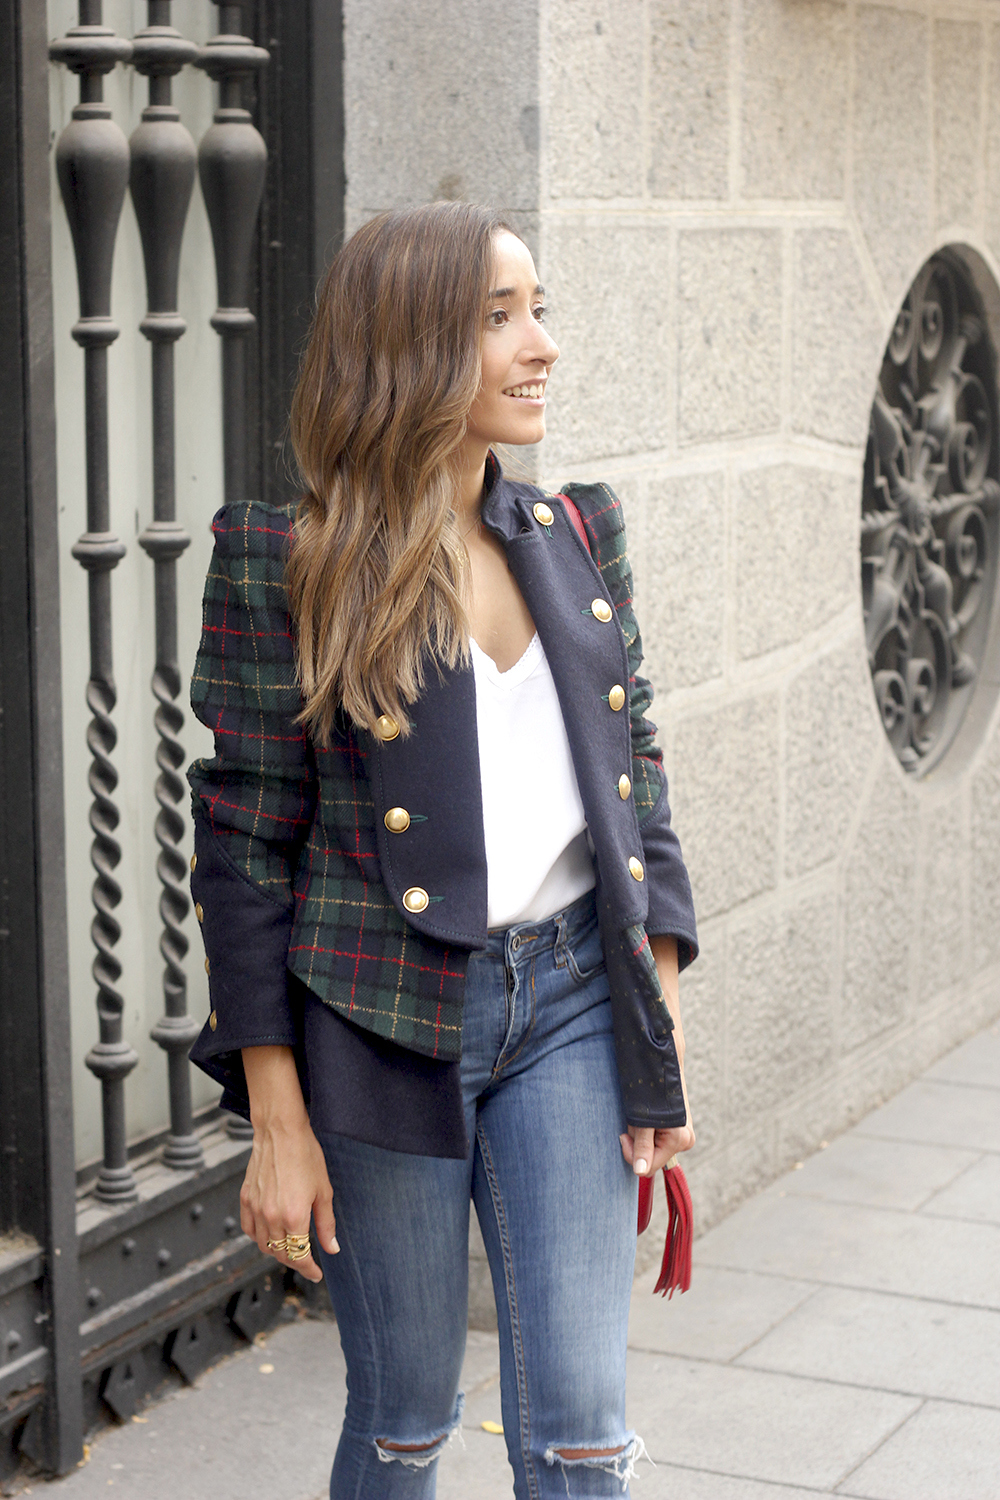 CHECKED BLAZER highly preppy gucci bag ripped jeans street style 2018 outfit08